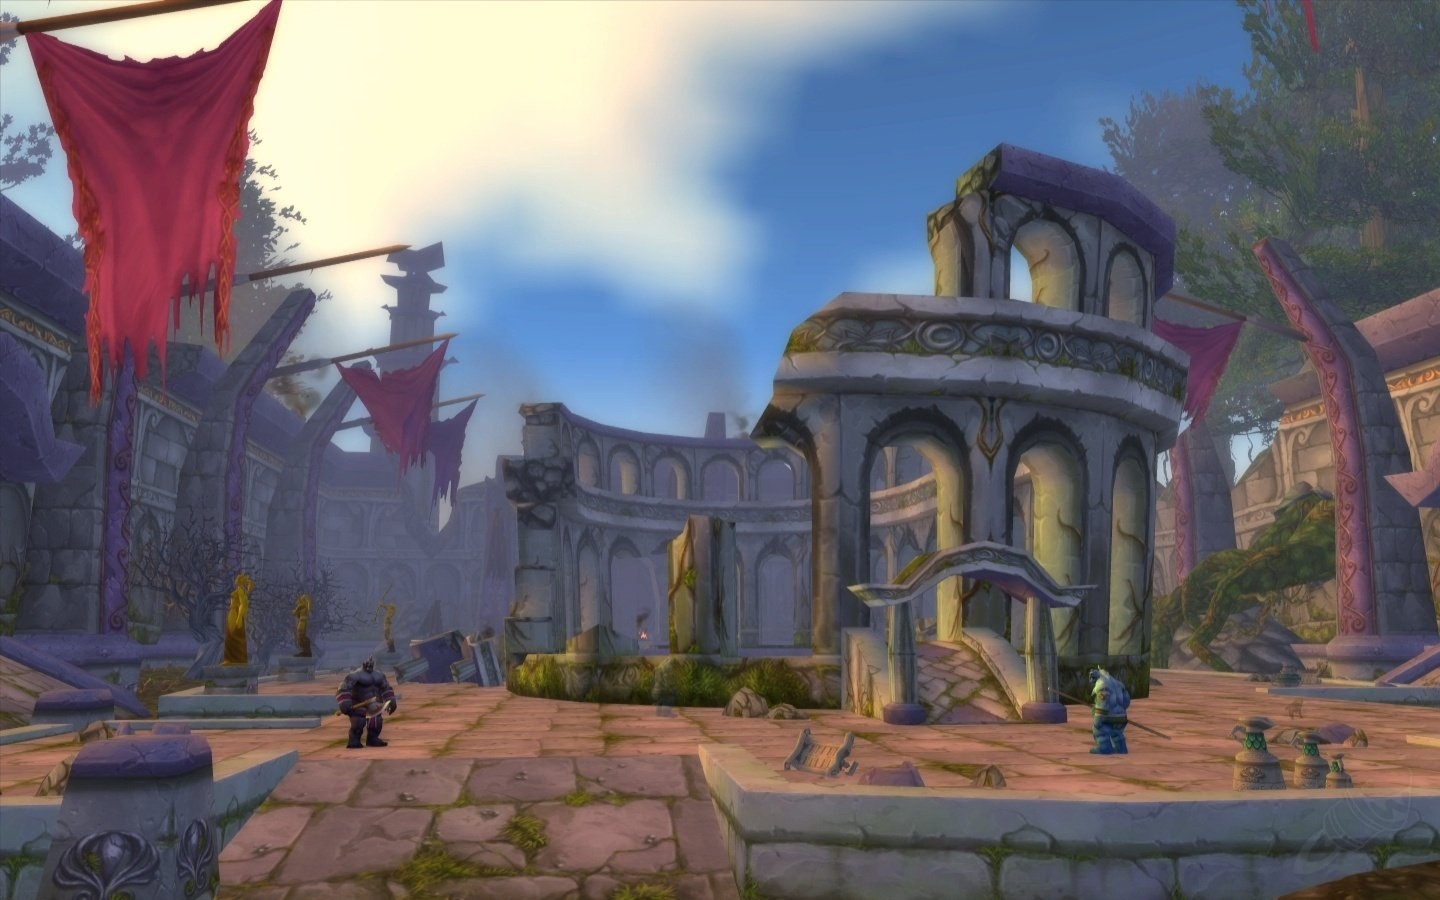 Dire Maul opens in WoW Classic October 15